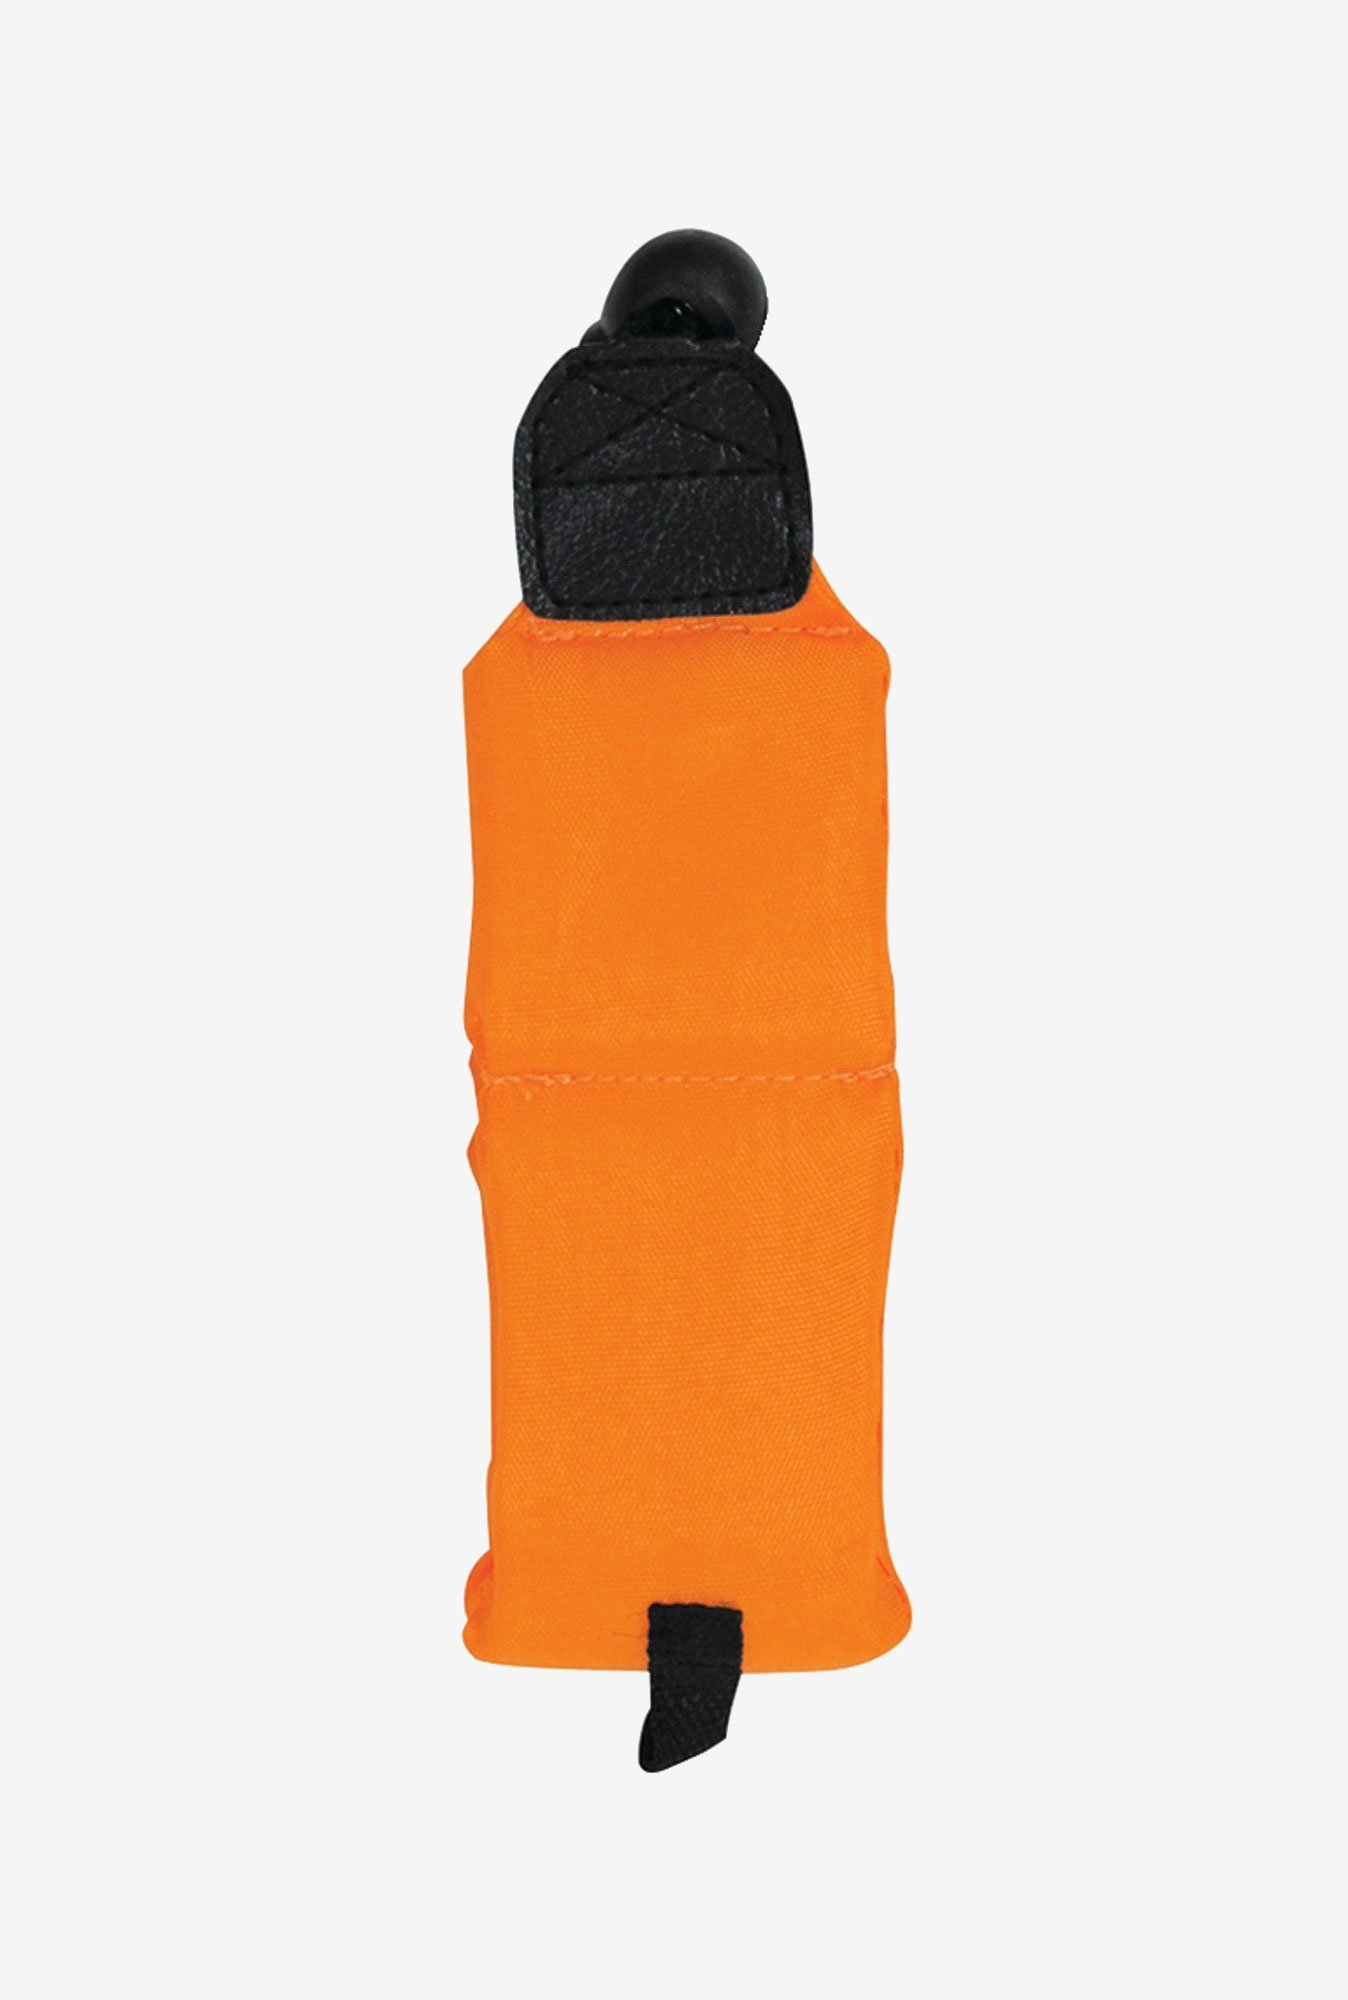 Vivitar Floating Foam Camera Strap (Orange)